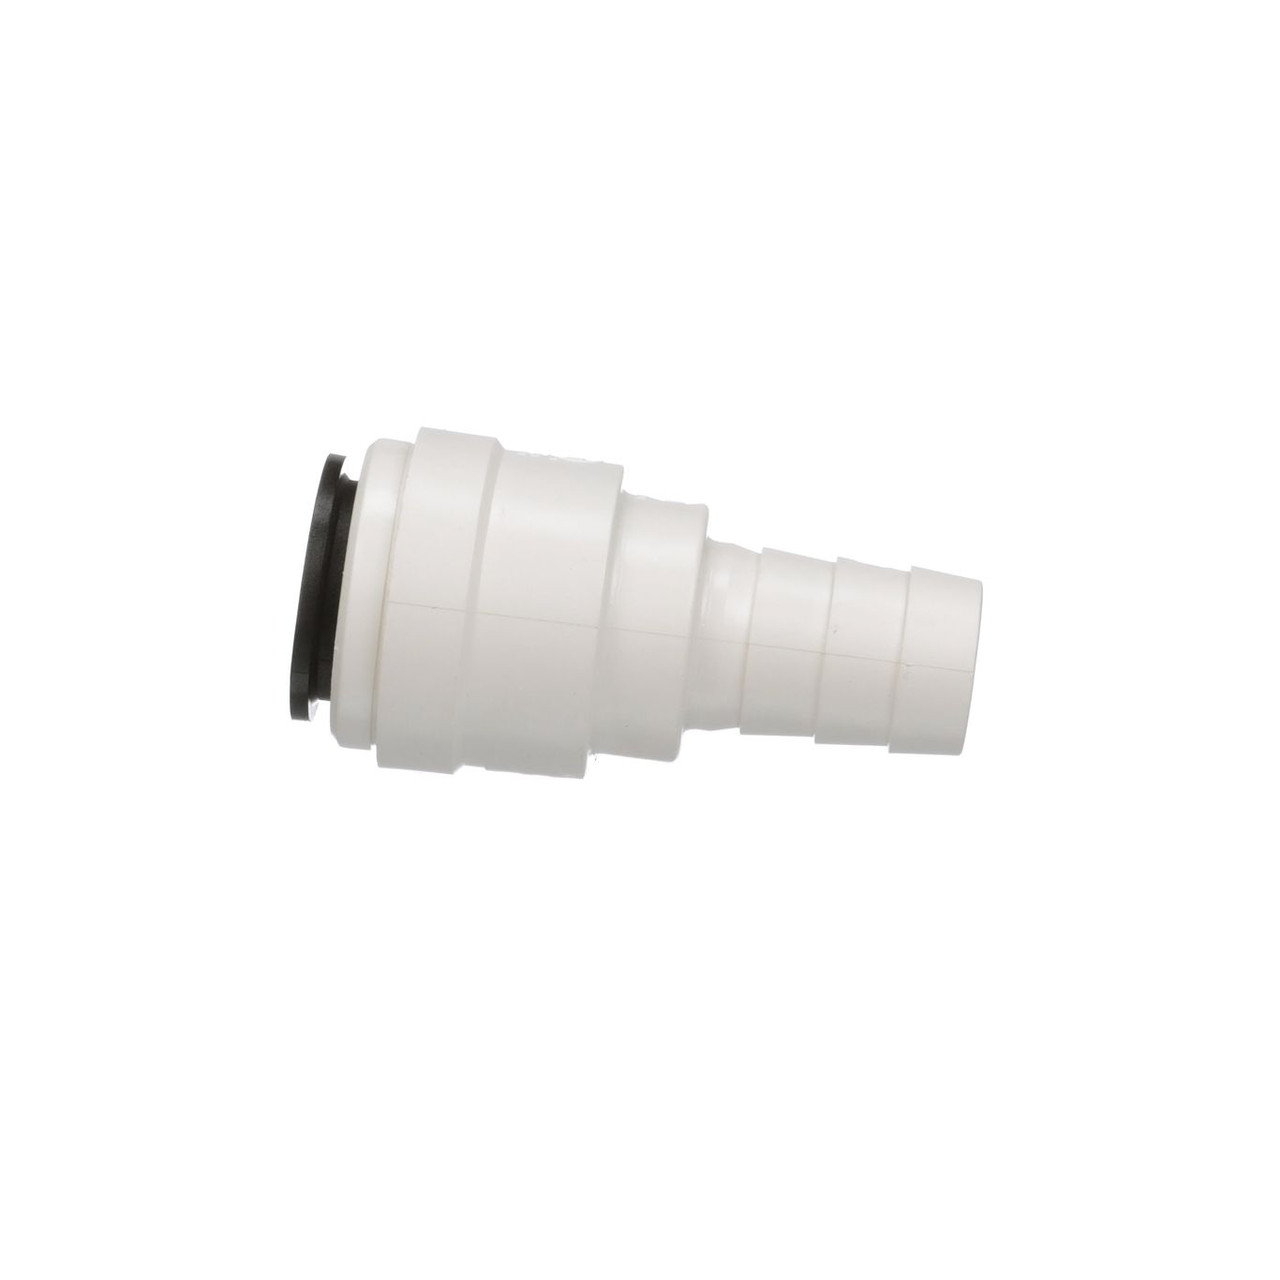 "3/4"" CTS x 3/4"" Hose Barb Adapter 3513-1412"